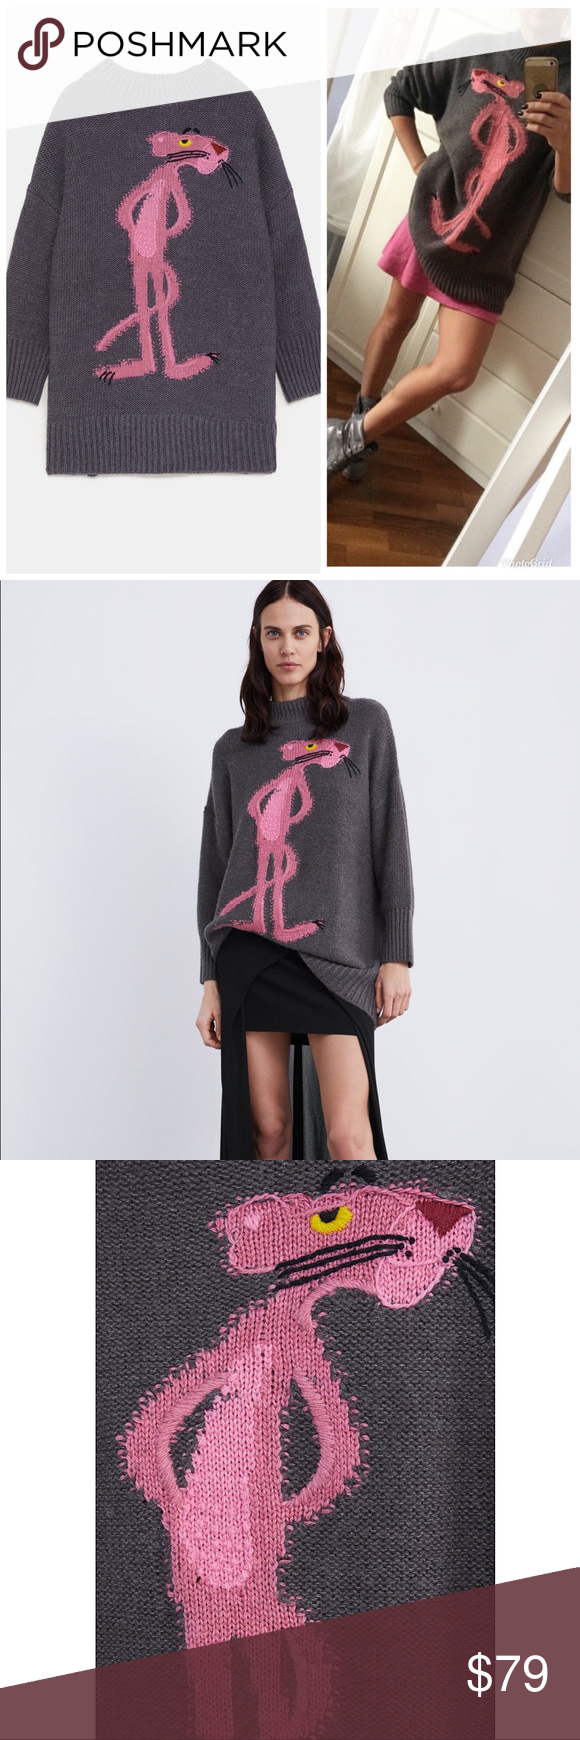 ee6927a55f ZARA Oversized Pink Panther Sweater Loose knit sweater with round ...